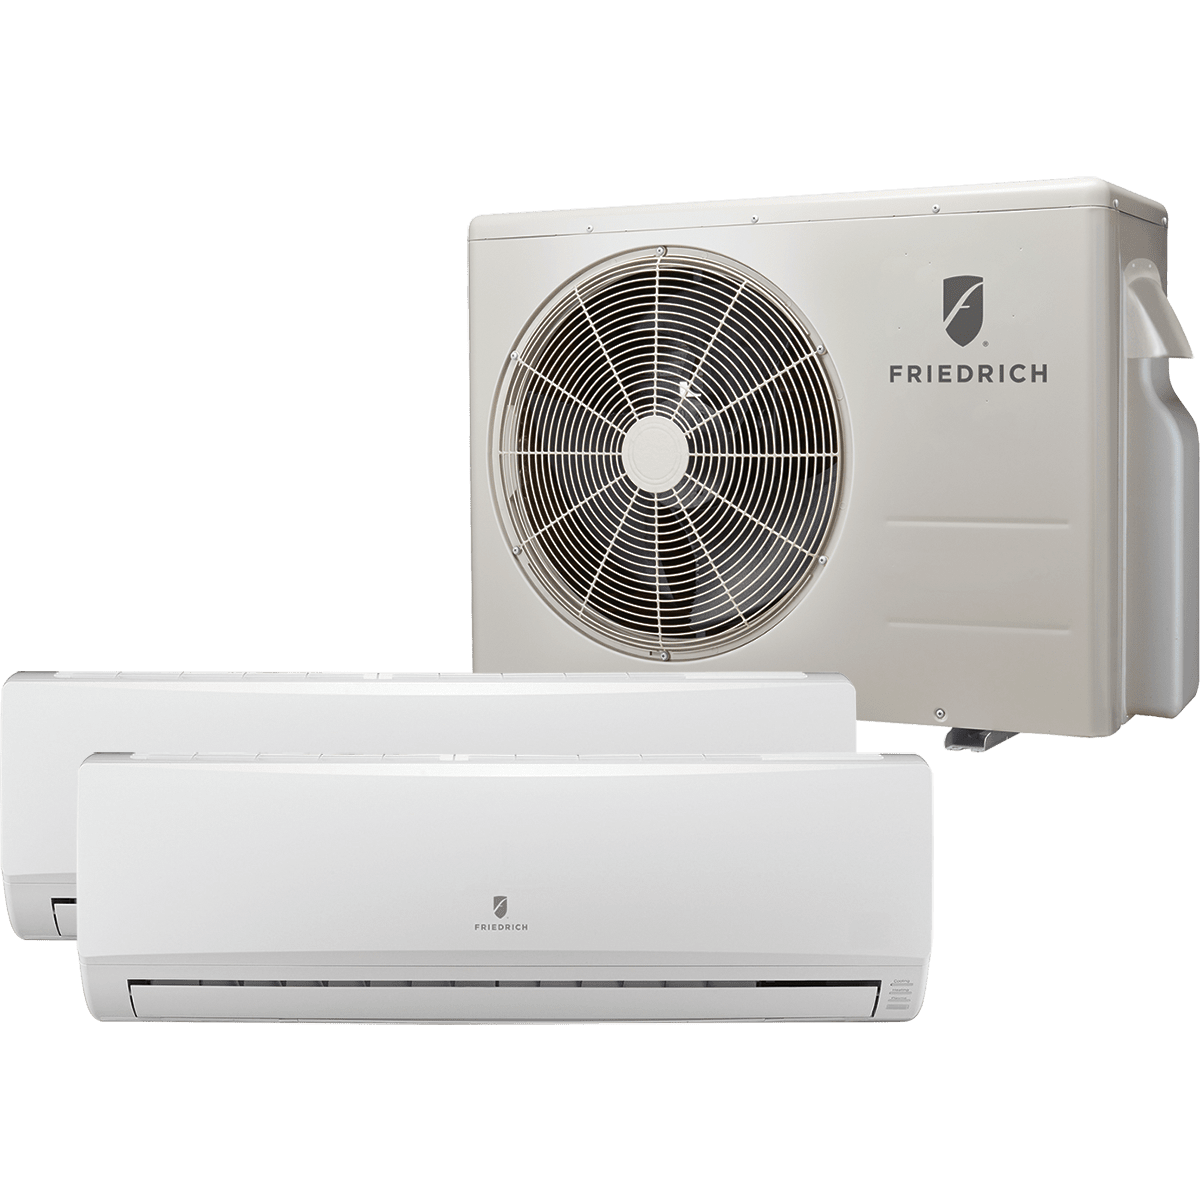 friedrich m24dyf mini split heat pump friedrich m24dyf mini split heat  #6E675D